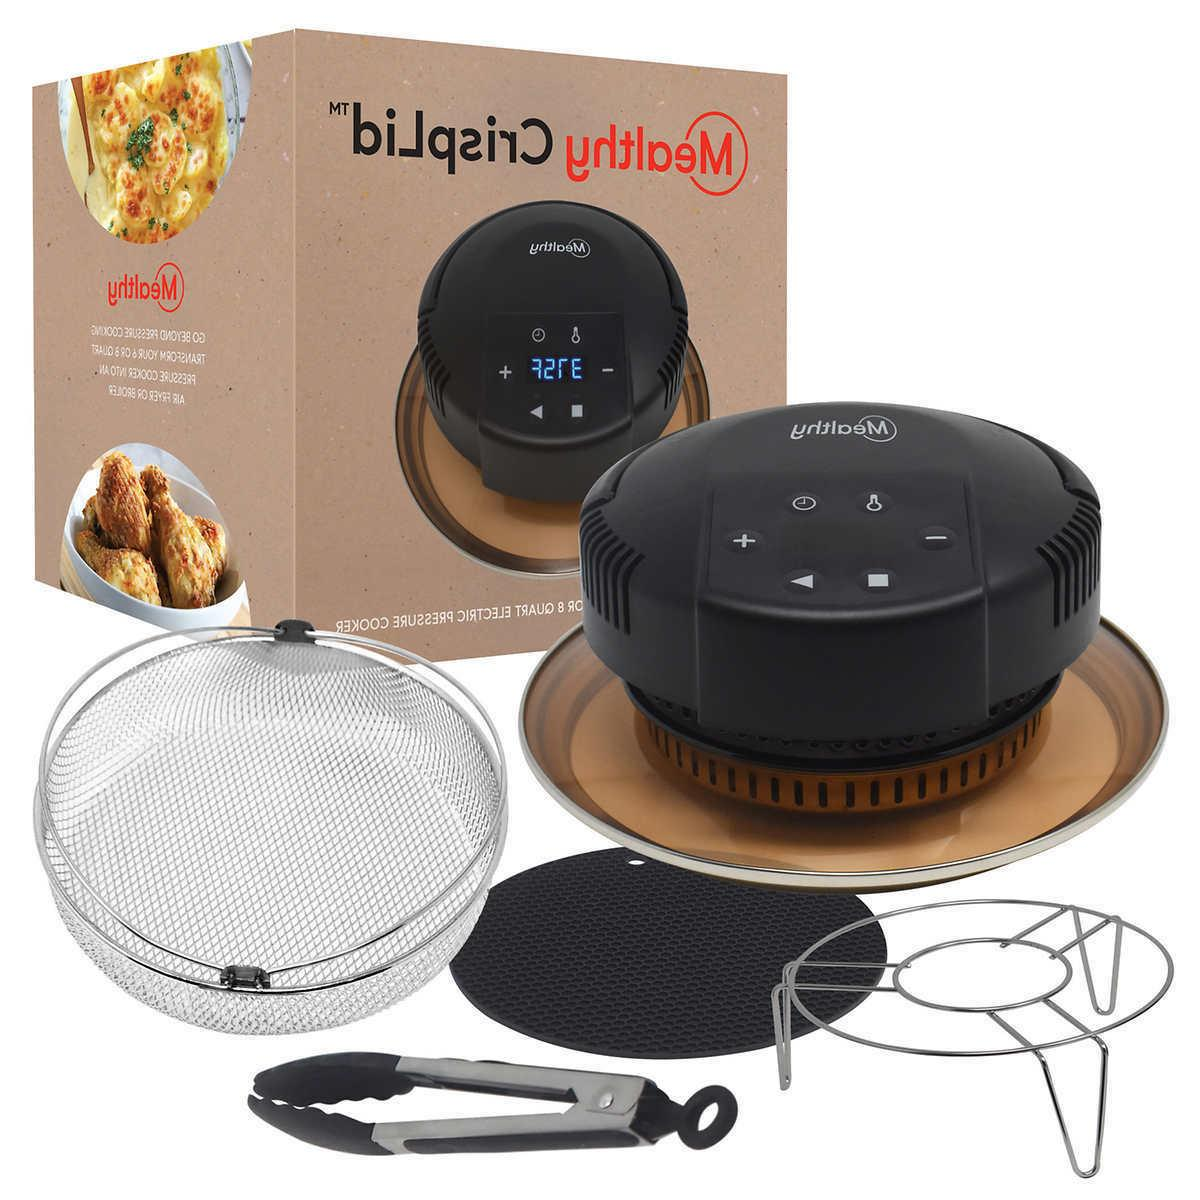 Mealthy CrispLid Air Fry Broil Dehydrate In 6- 8 Qt Electric